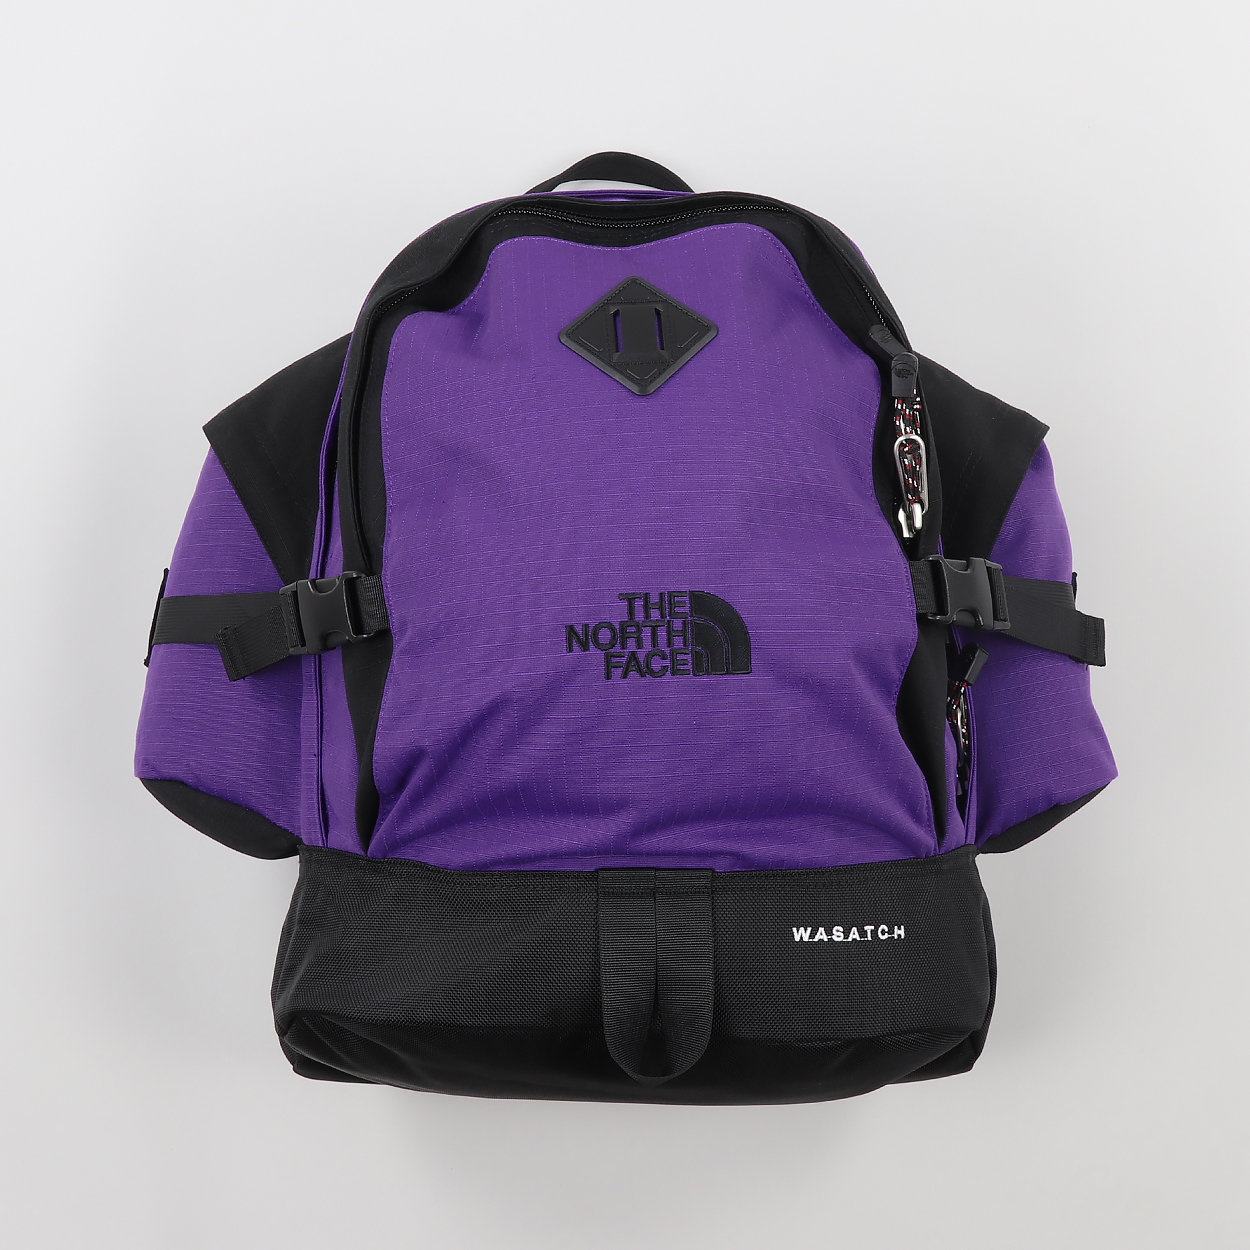 2dd05b1f7c3 The North Face Wasatch Reissue Backpack Tillandsia Purple Black £67.00